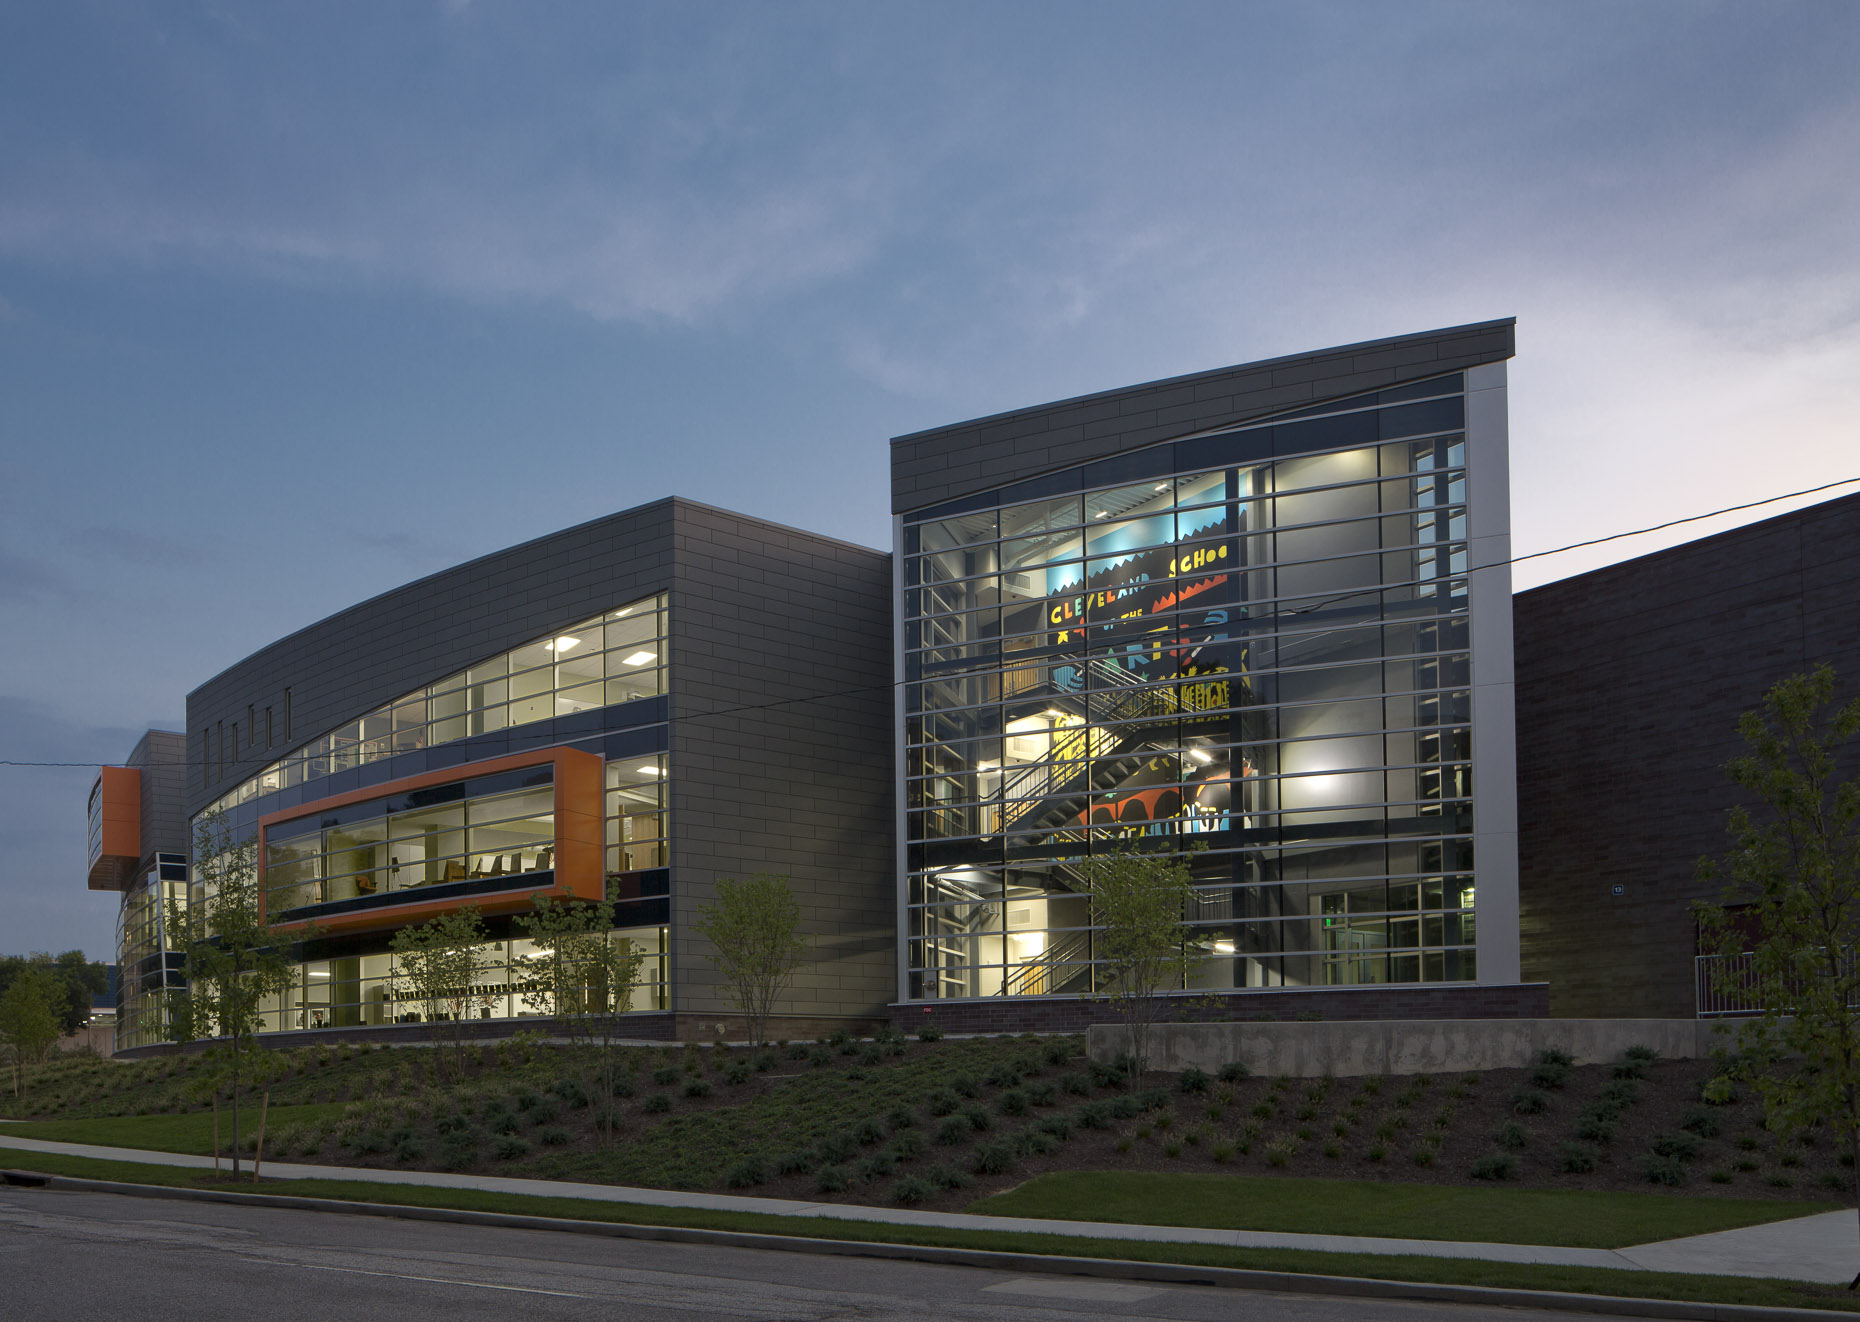 Cleveland School of the Arts by Moody Nolan photographed by Lauren K Davis based in Columbus, Ohio